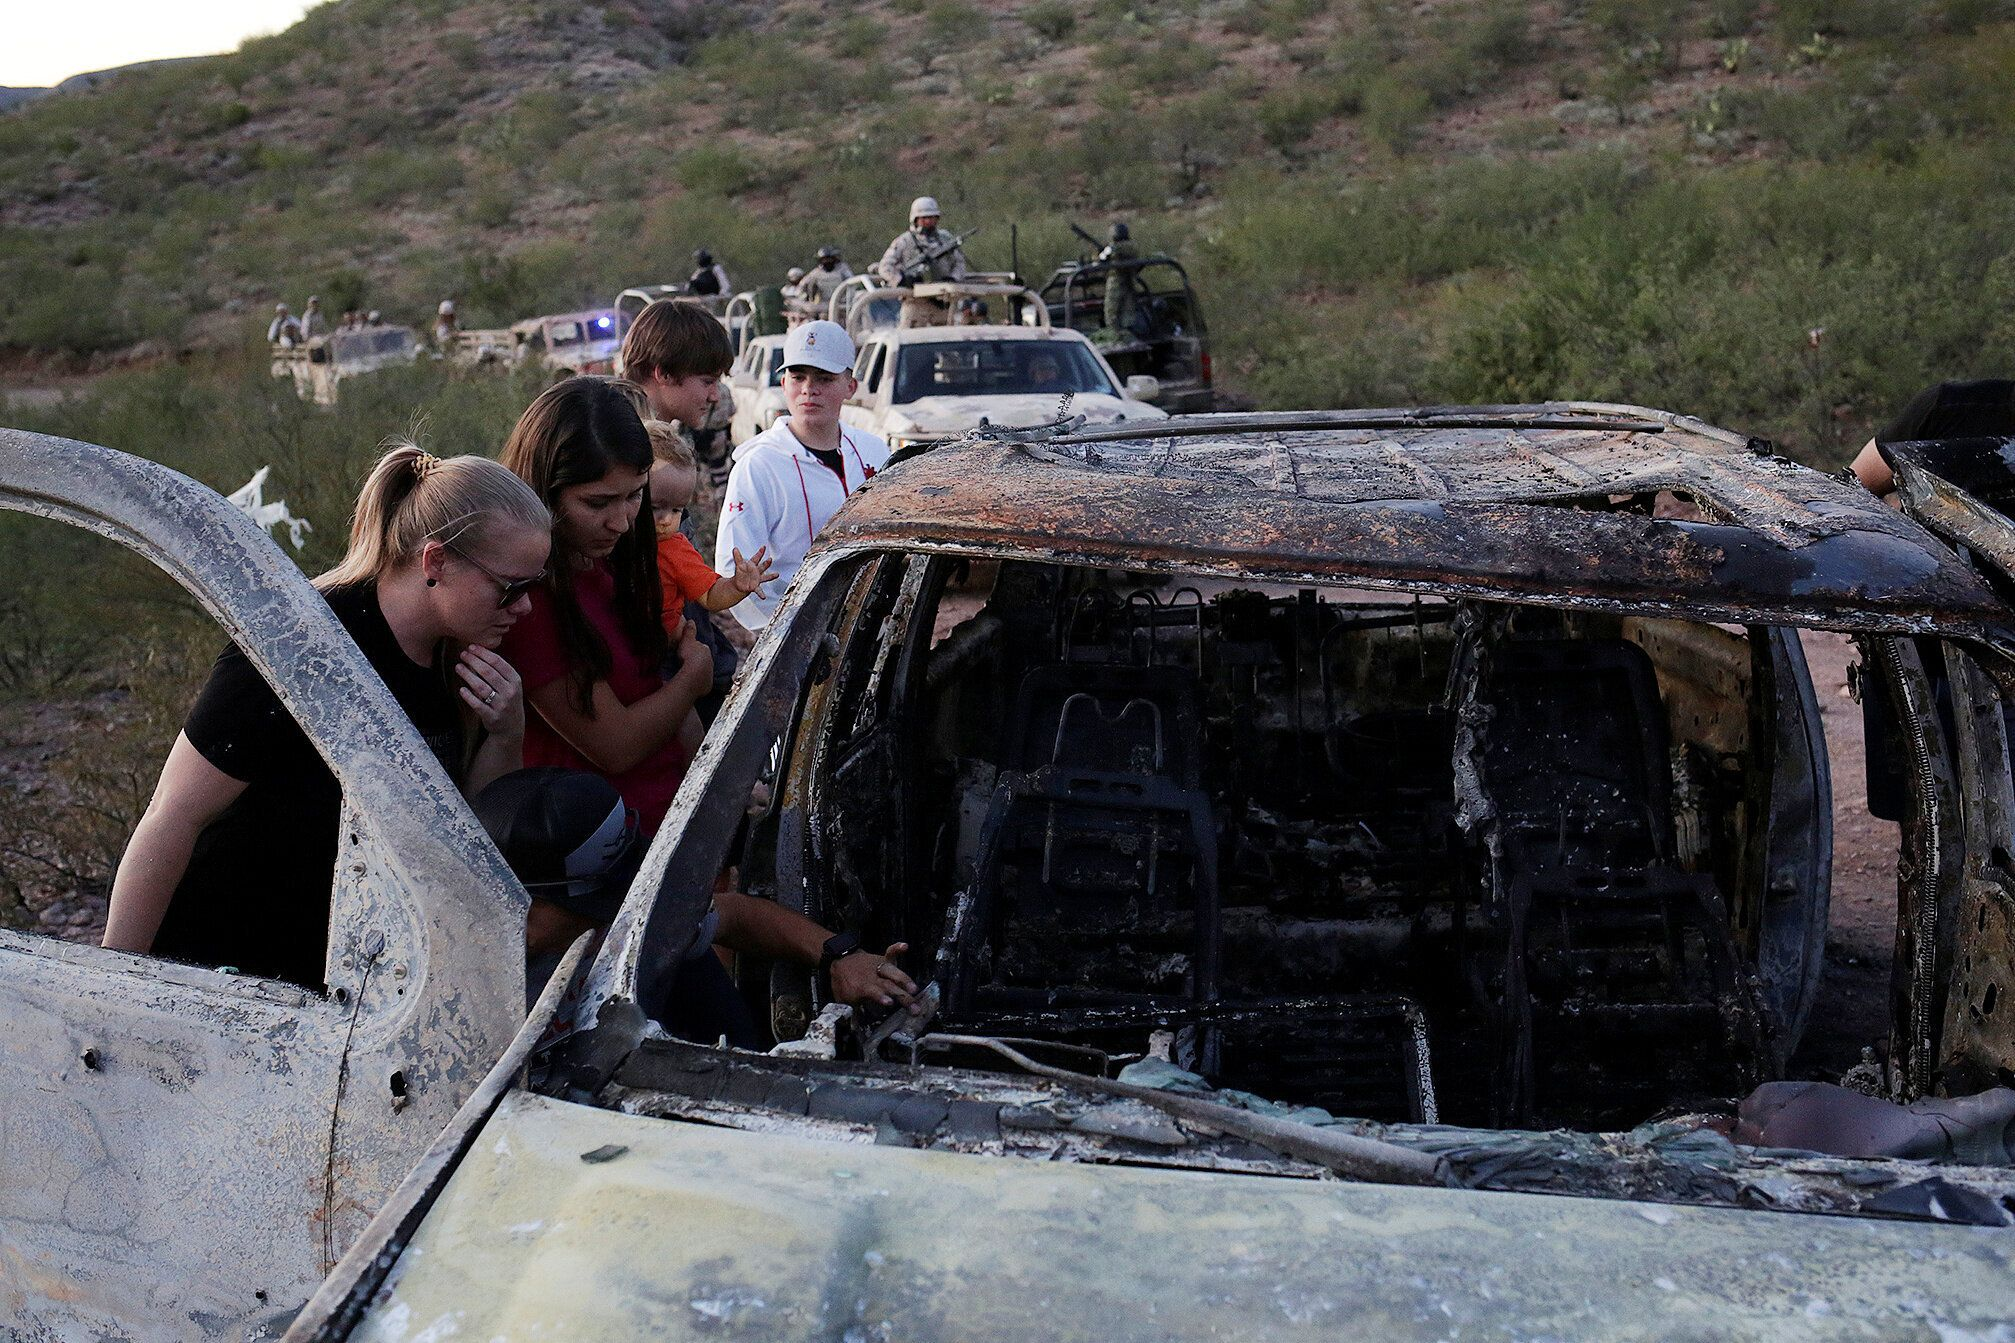 Relatives of slain members of Mexican-American families belonging to Mormon communities observe the burnt wreckage of a vehic